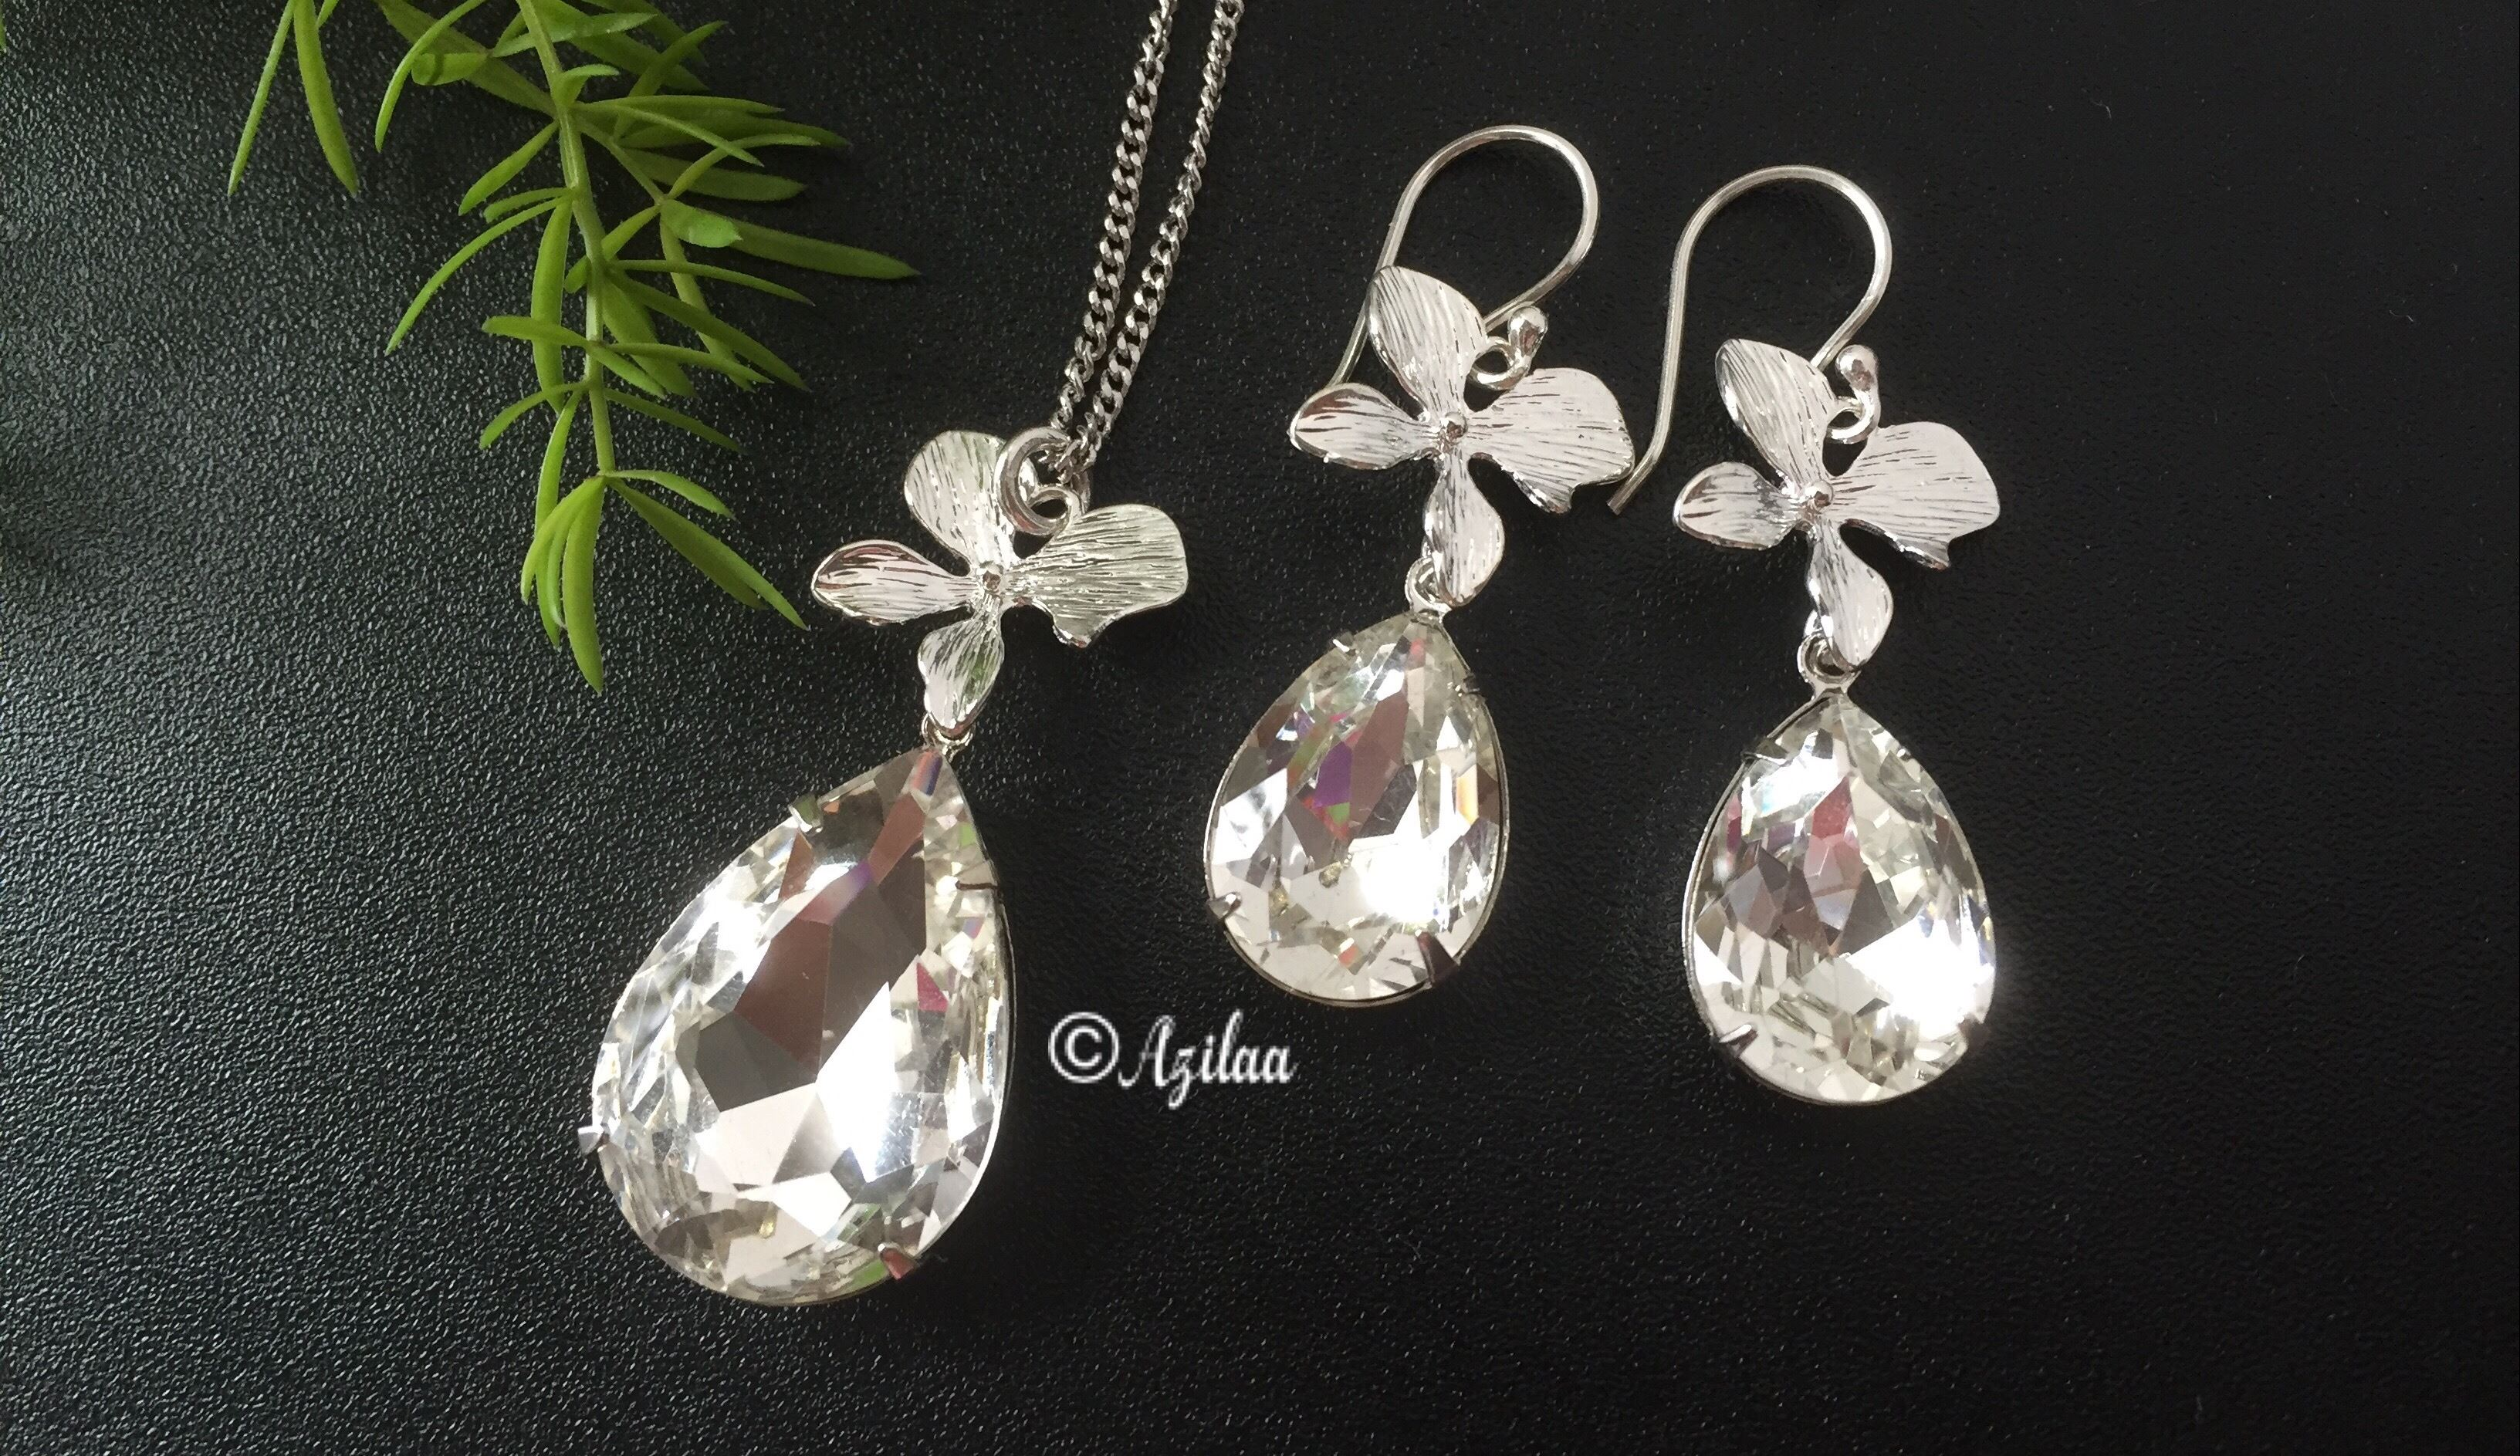 Orchid Flower Designer Crystal Pendant Necklace Set At 2950 Azilaa